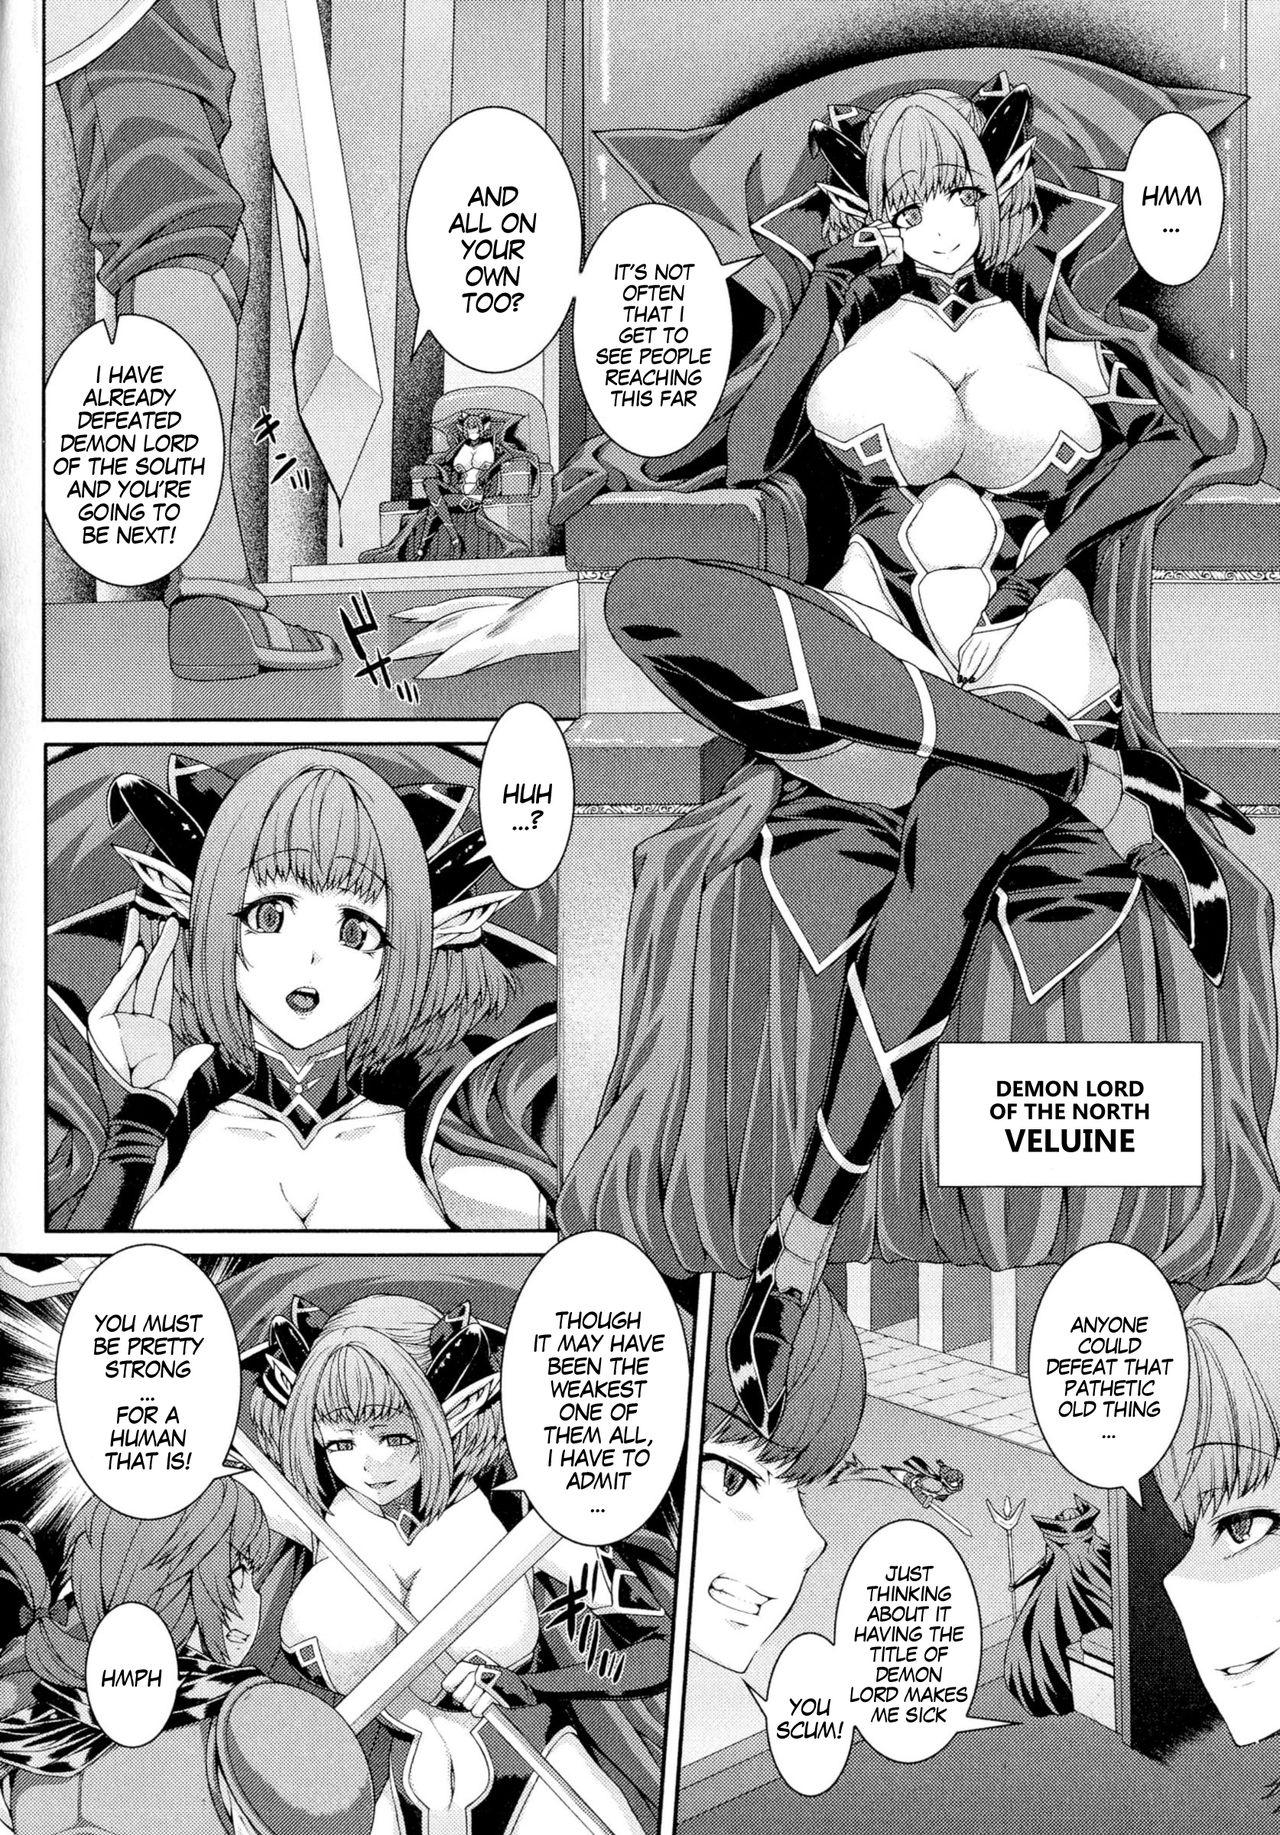 """Pandora's Box """"Hero And The Demon Lord Of The North"""" 1"""